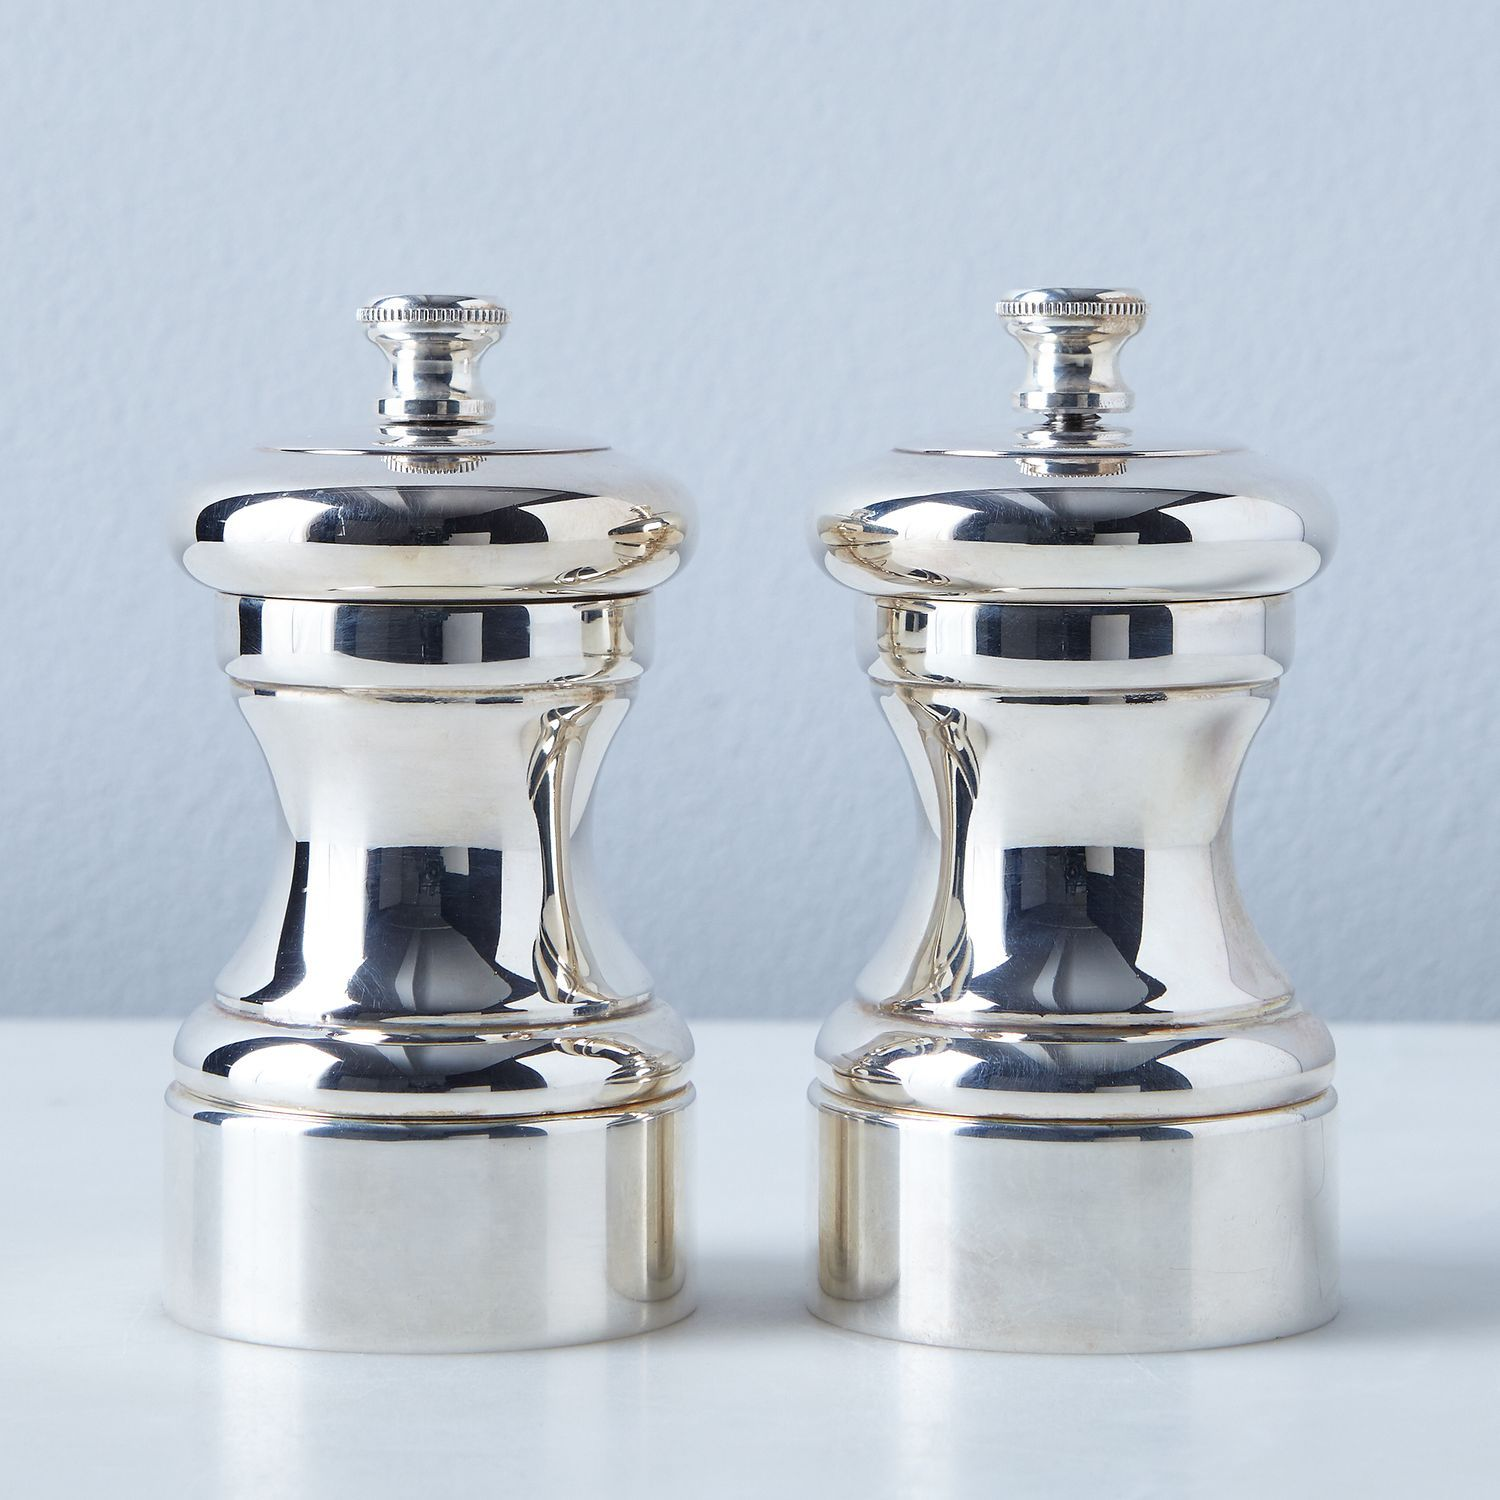 Peugeot Silver Plated Pepper Salt Mills Silver Plate Silver Stuffed Peppers